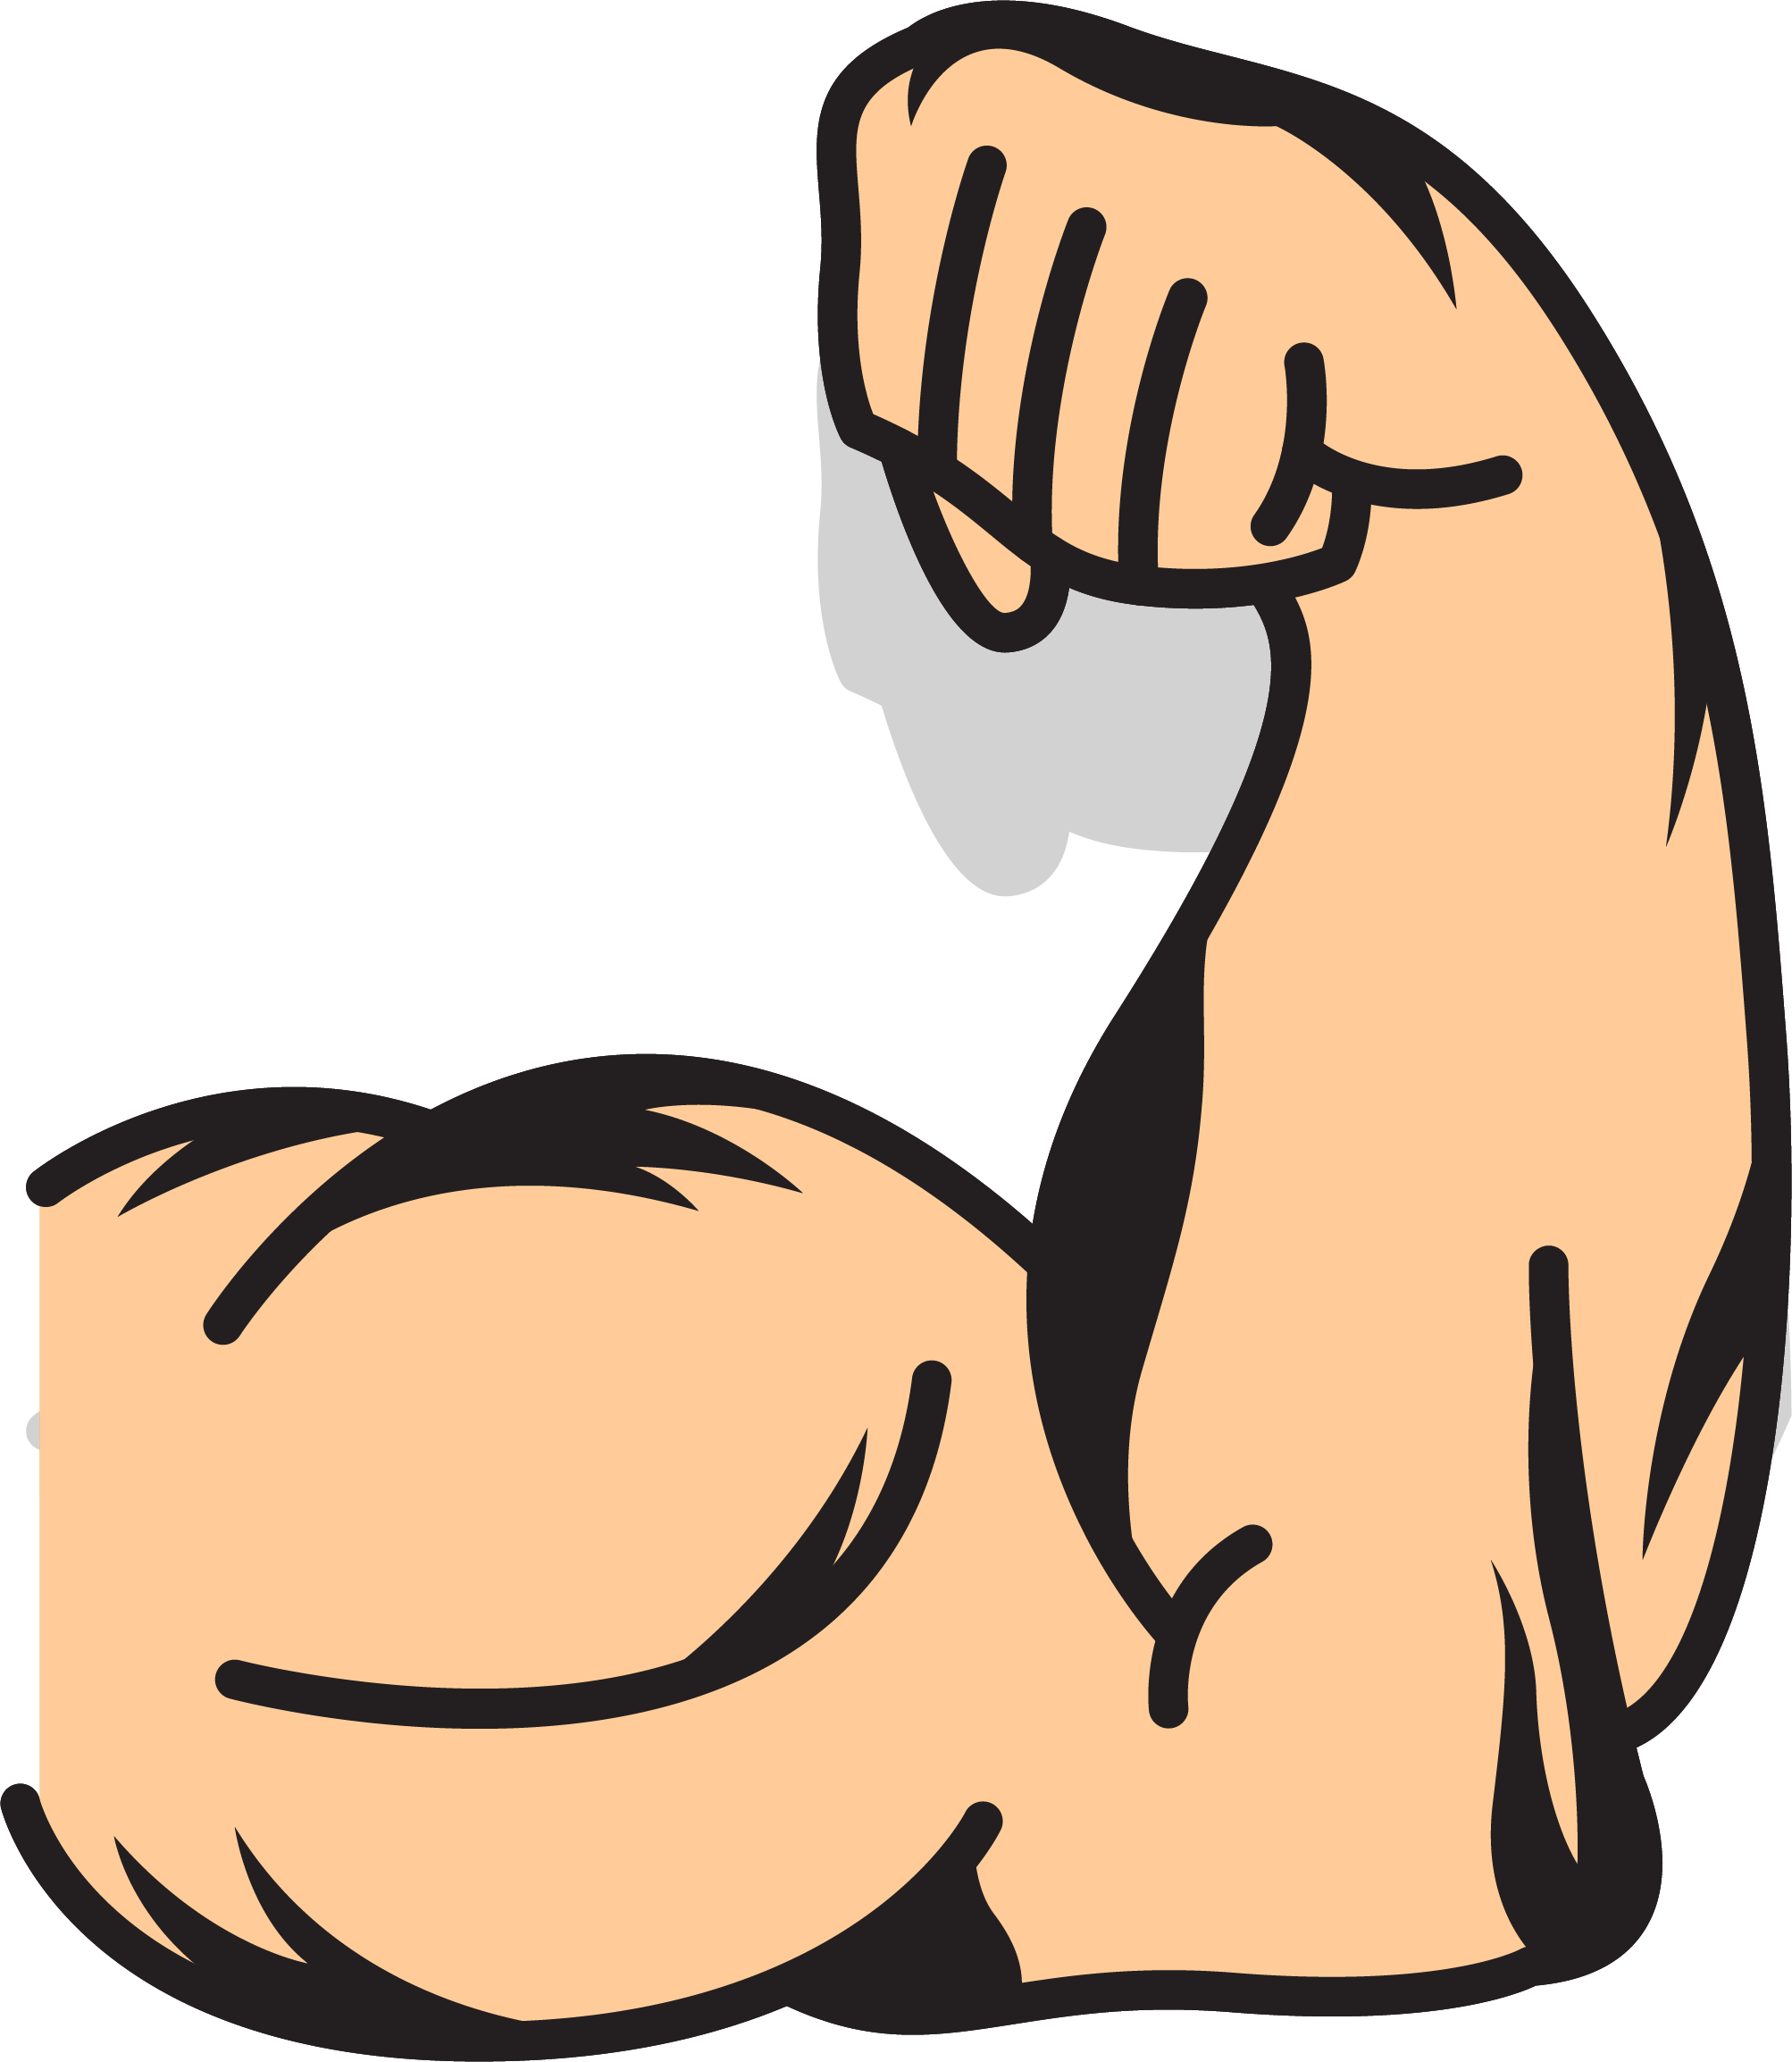 muscle clipart brawny